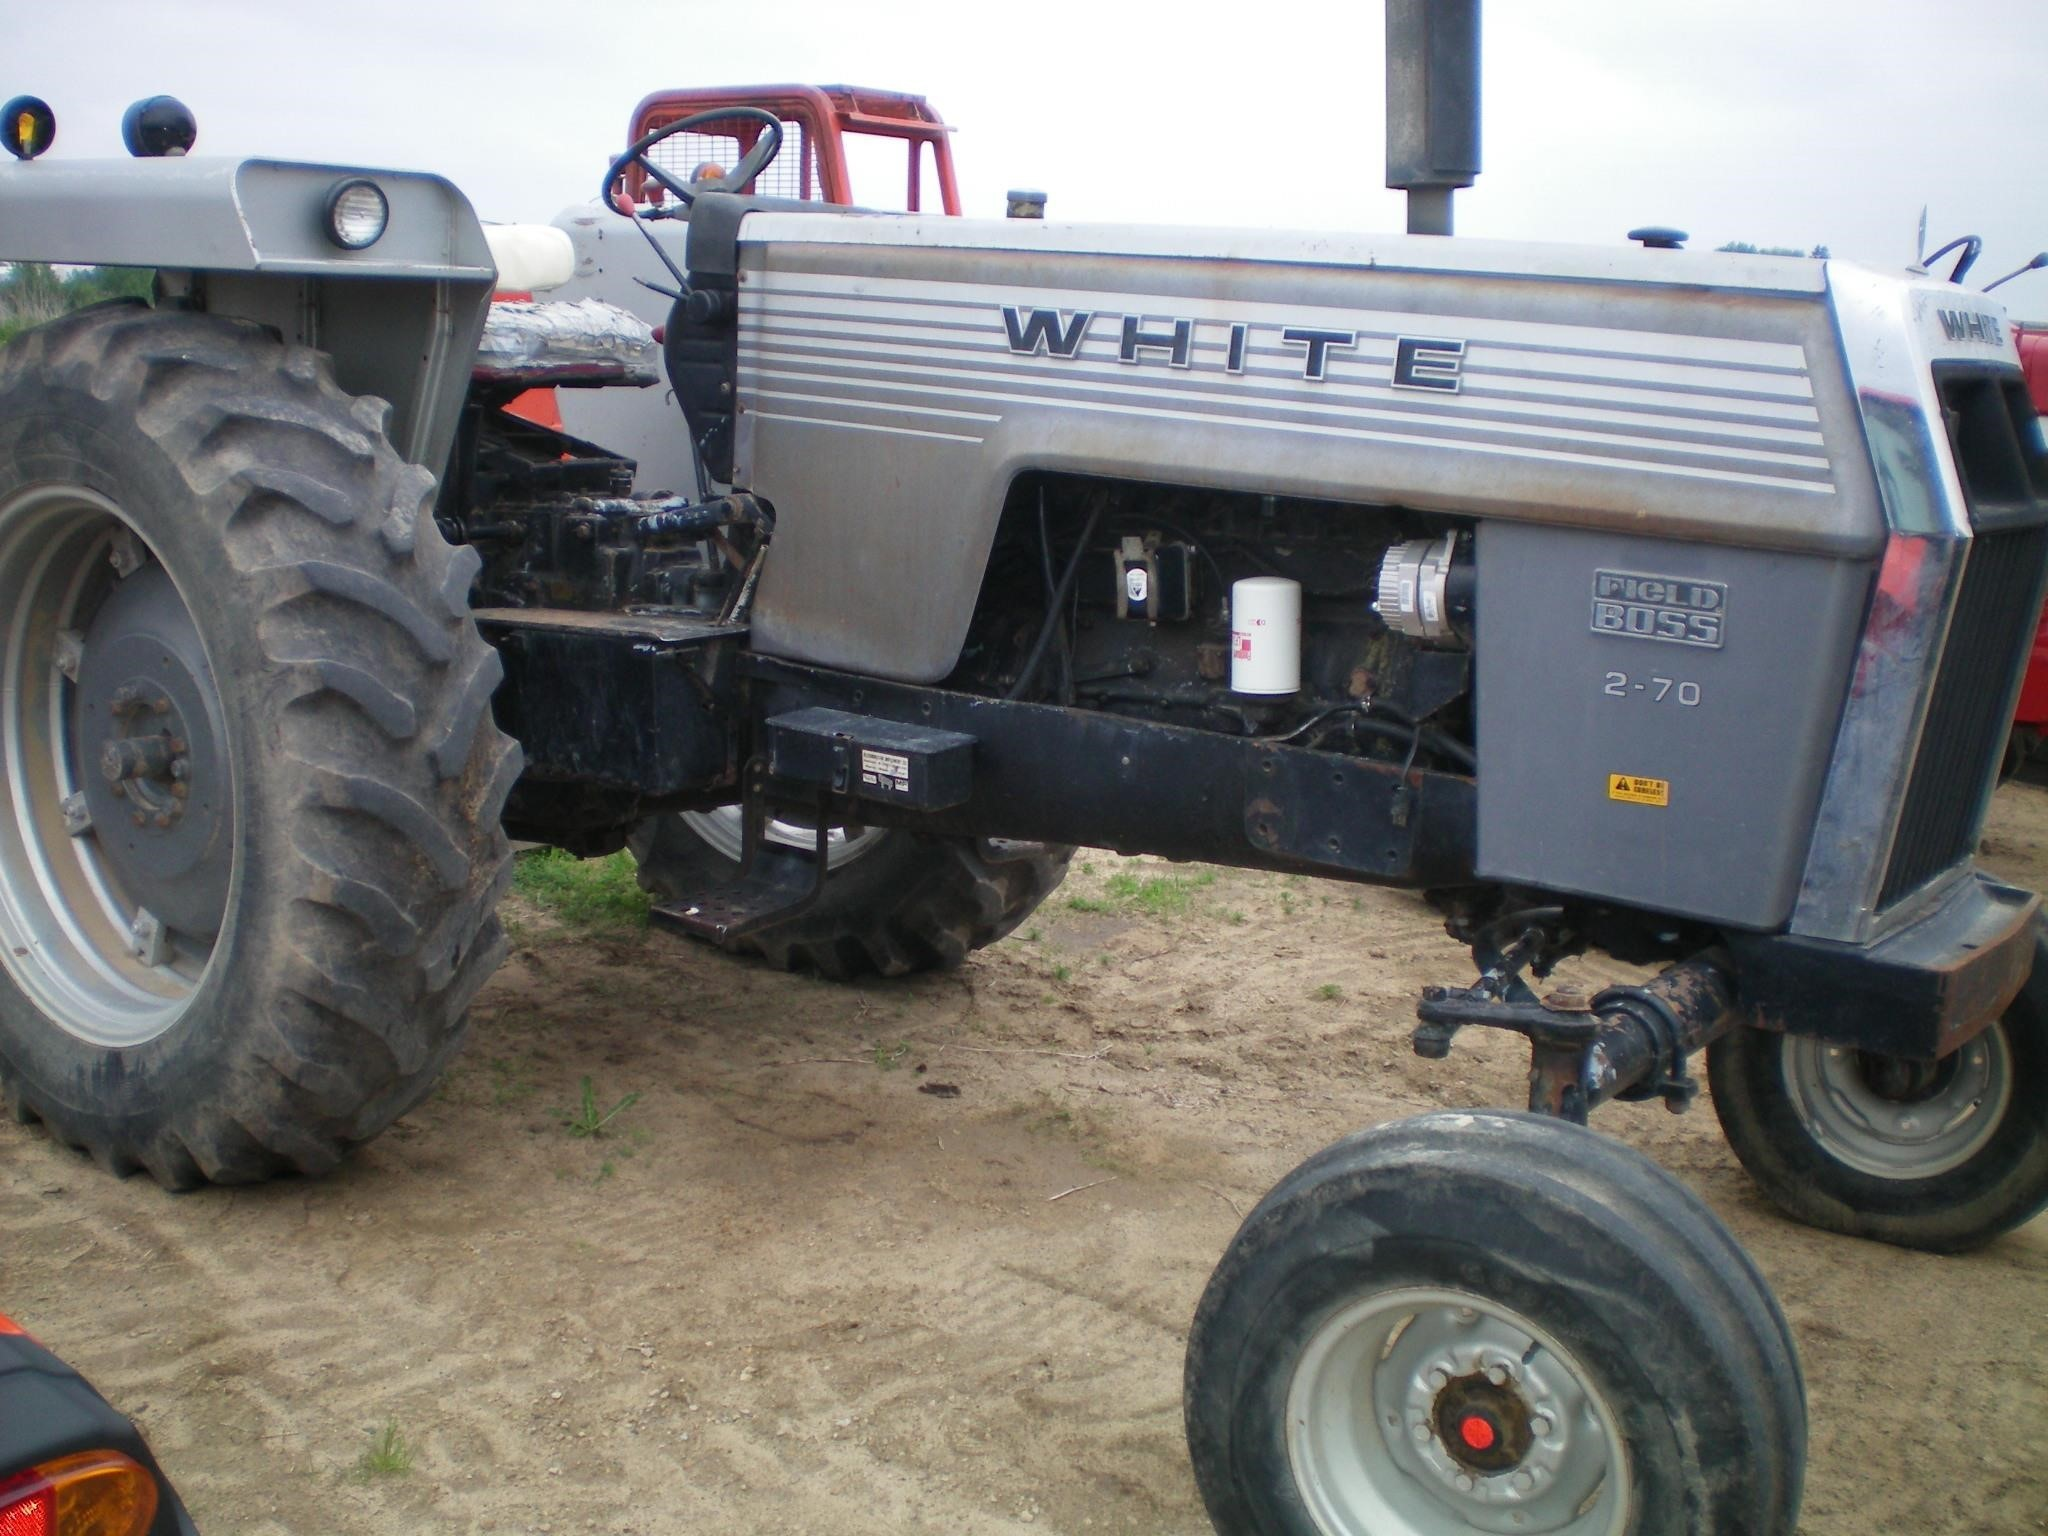 1979 White 2-70 Tractor